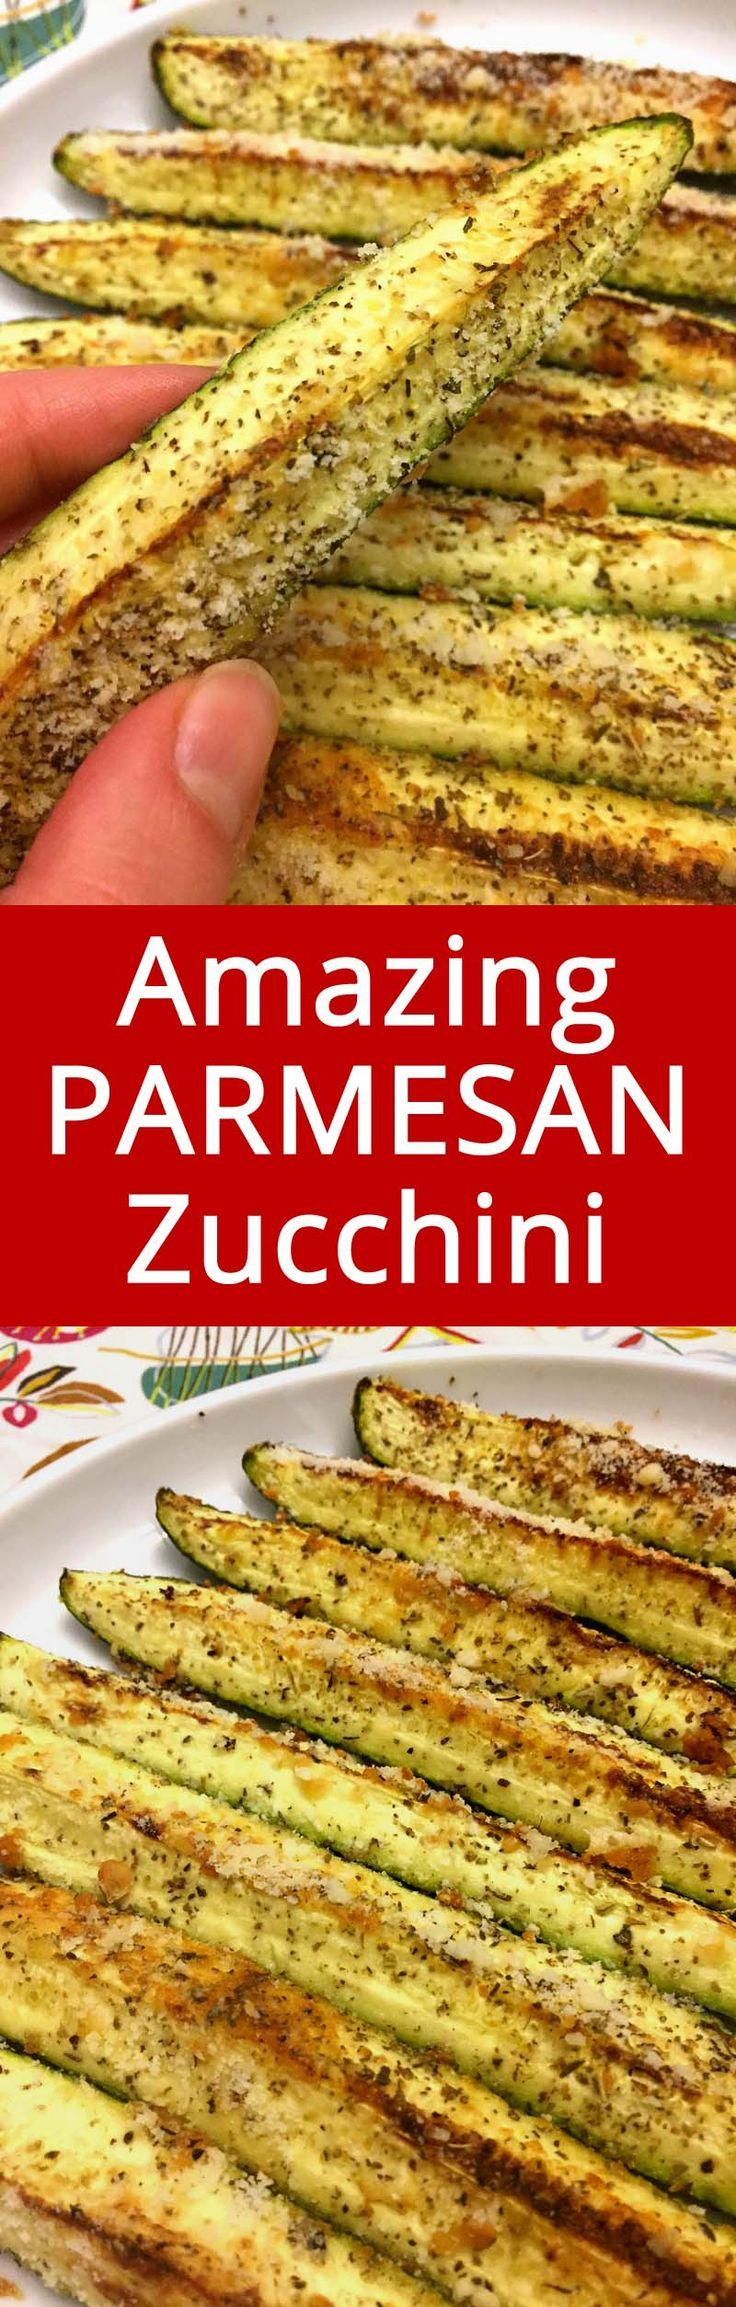 This is my favorite zucchini recipe! Parmesan and garlic makes it perfect!